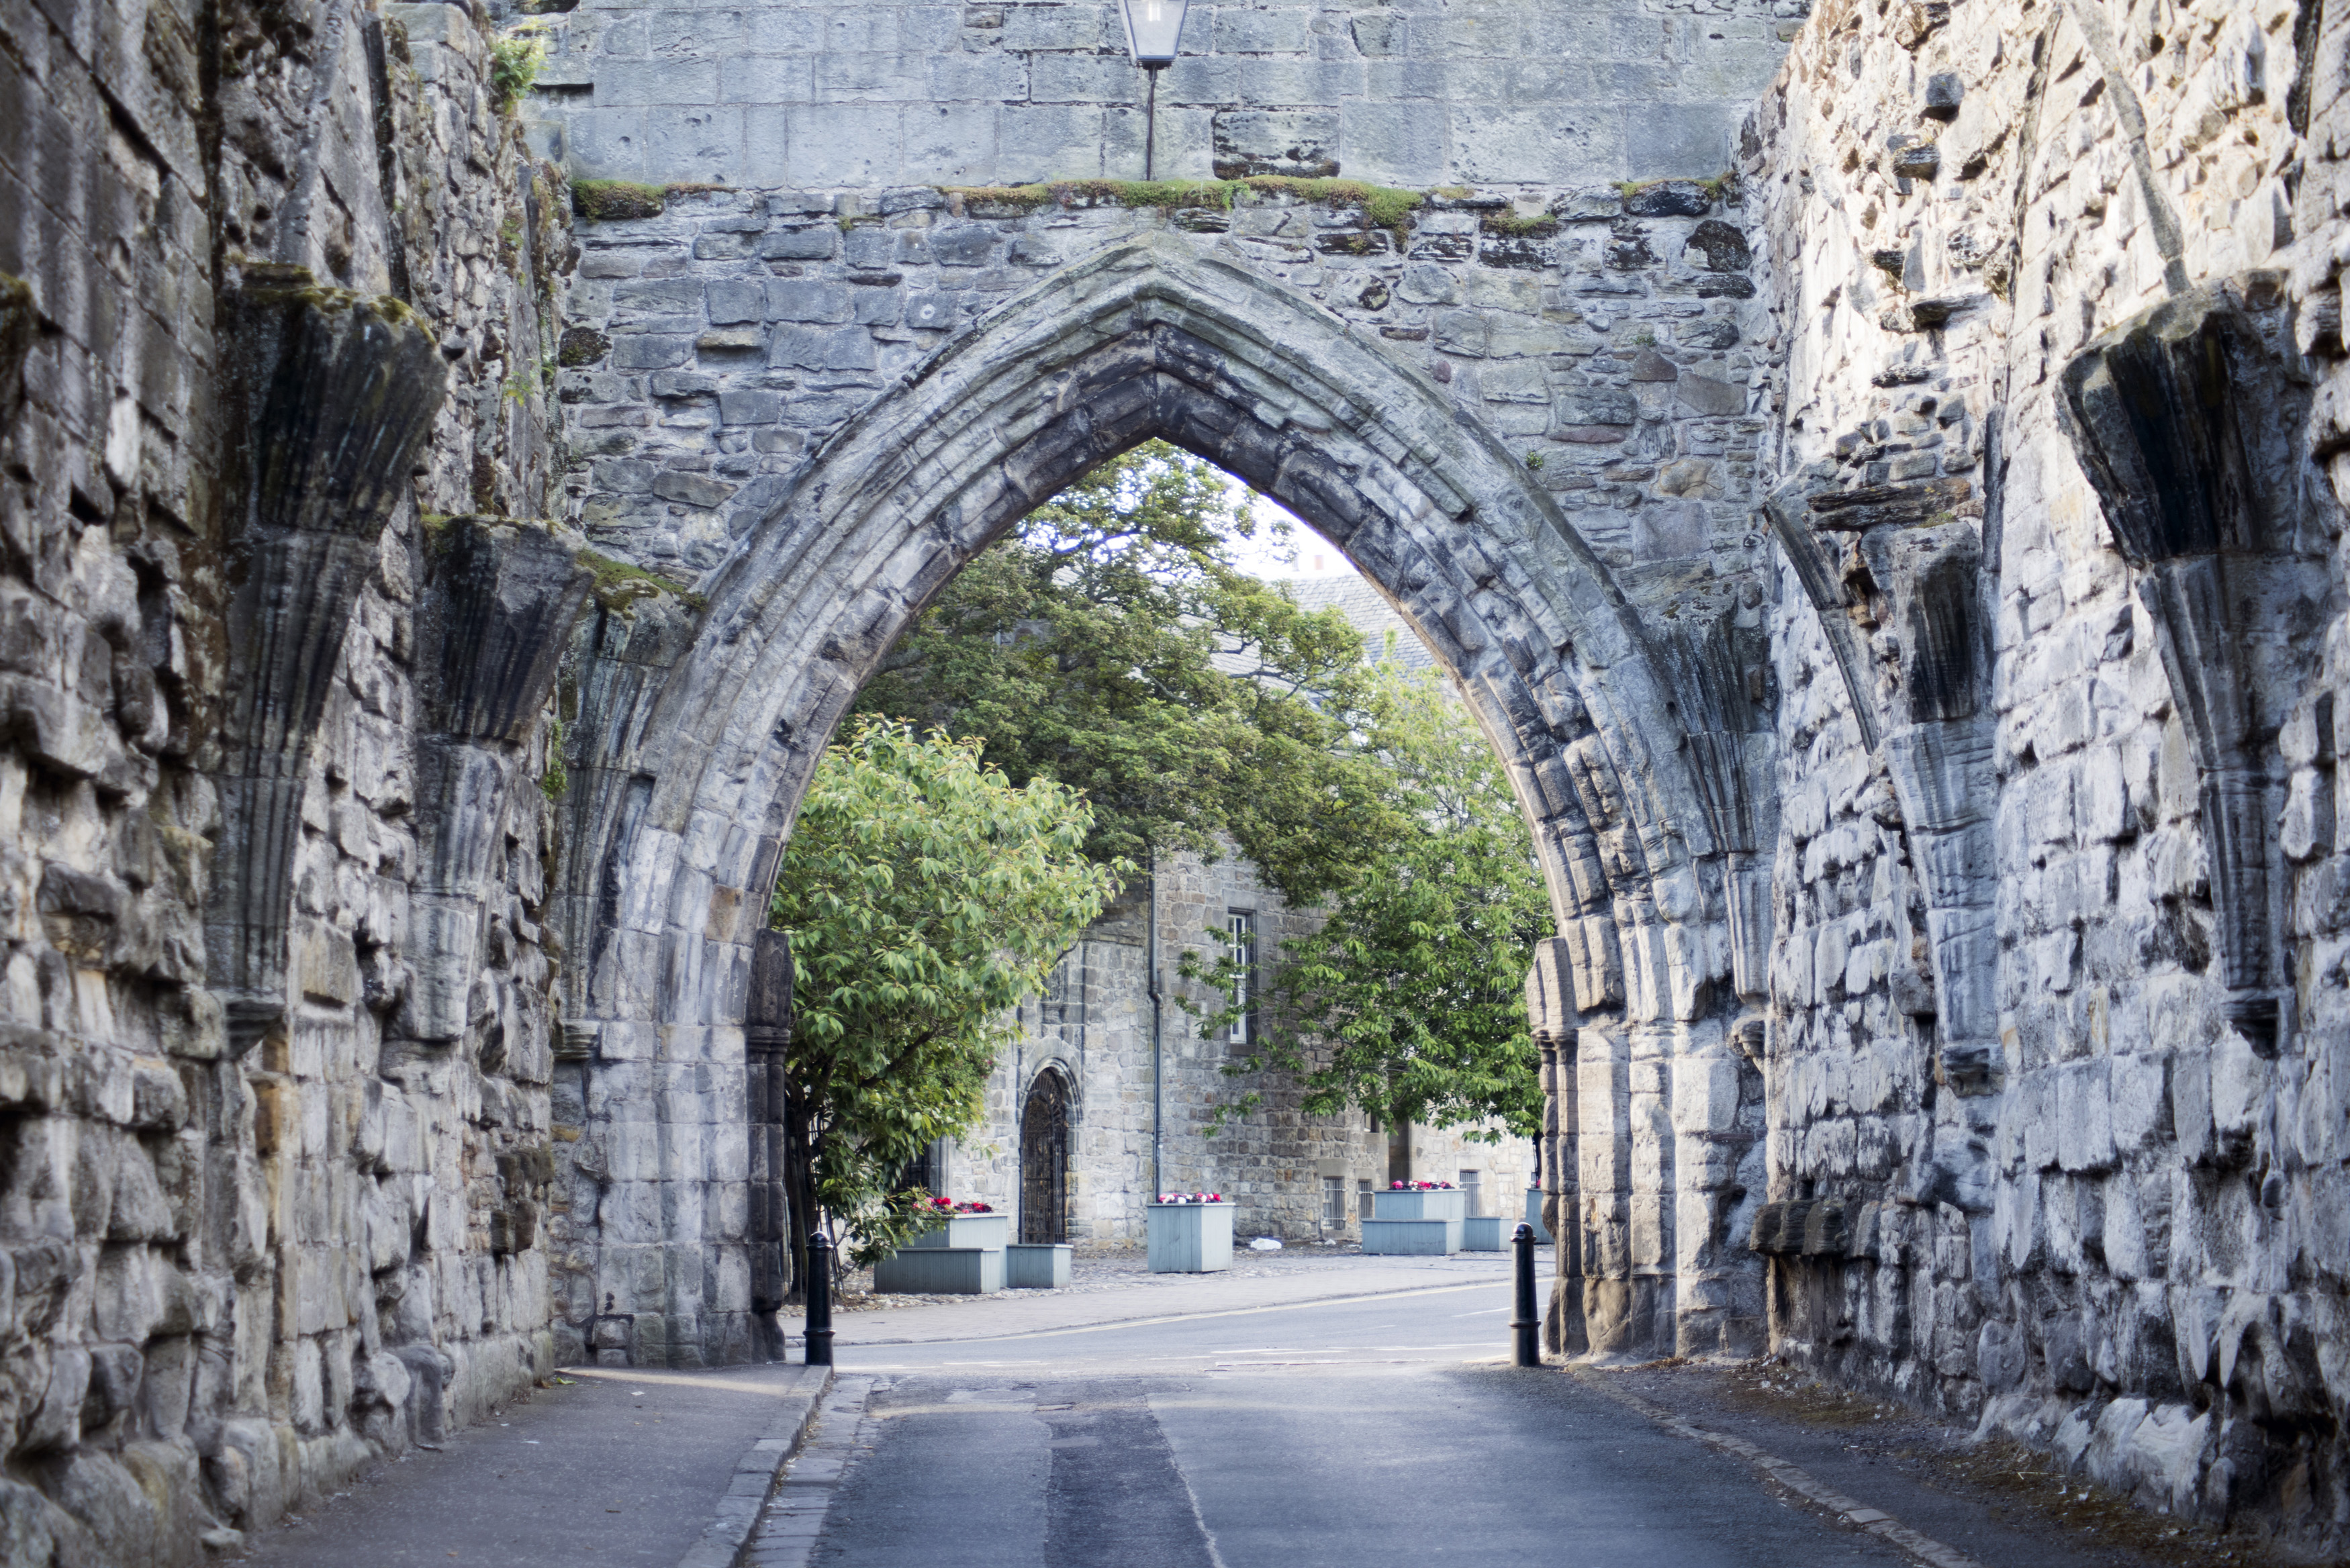 Arched Gothic stone entrance to St Andrews, Fife, Scotland a popular historic tourist attraction